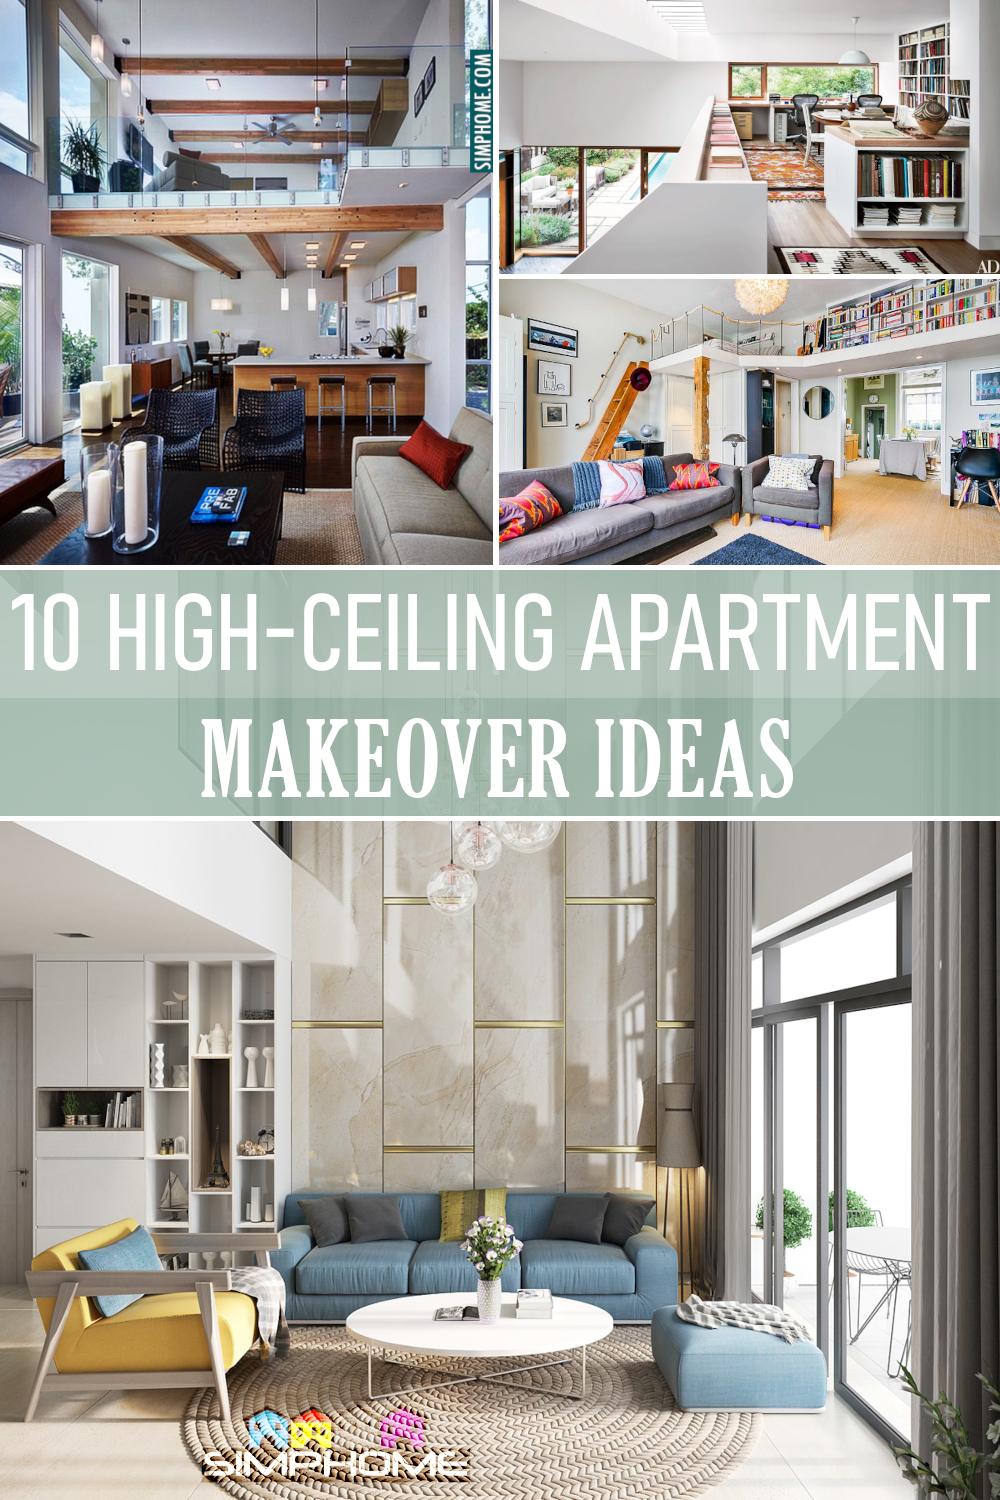 High Ceiling Apartment makeover ideas via Simphome.com Featured Image